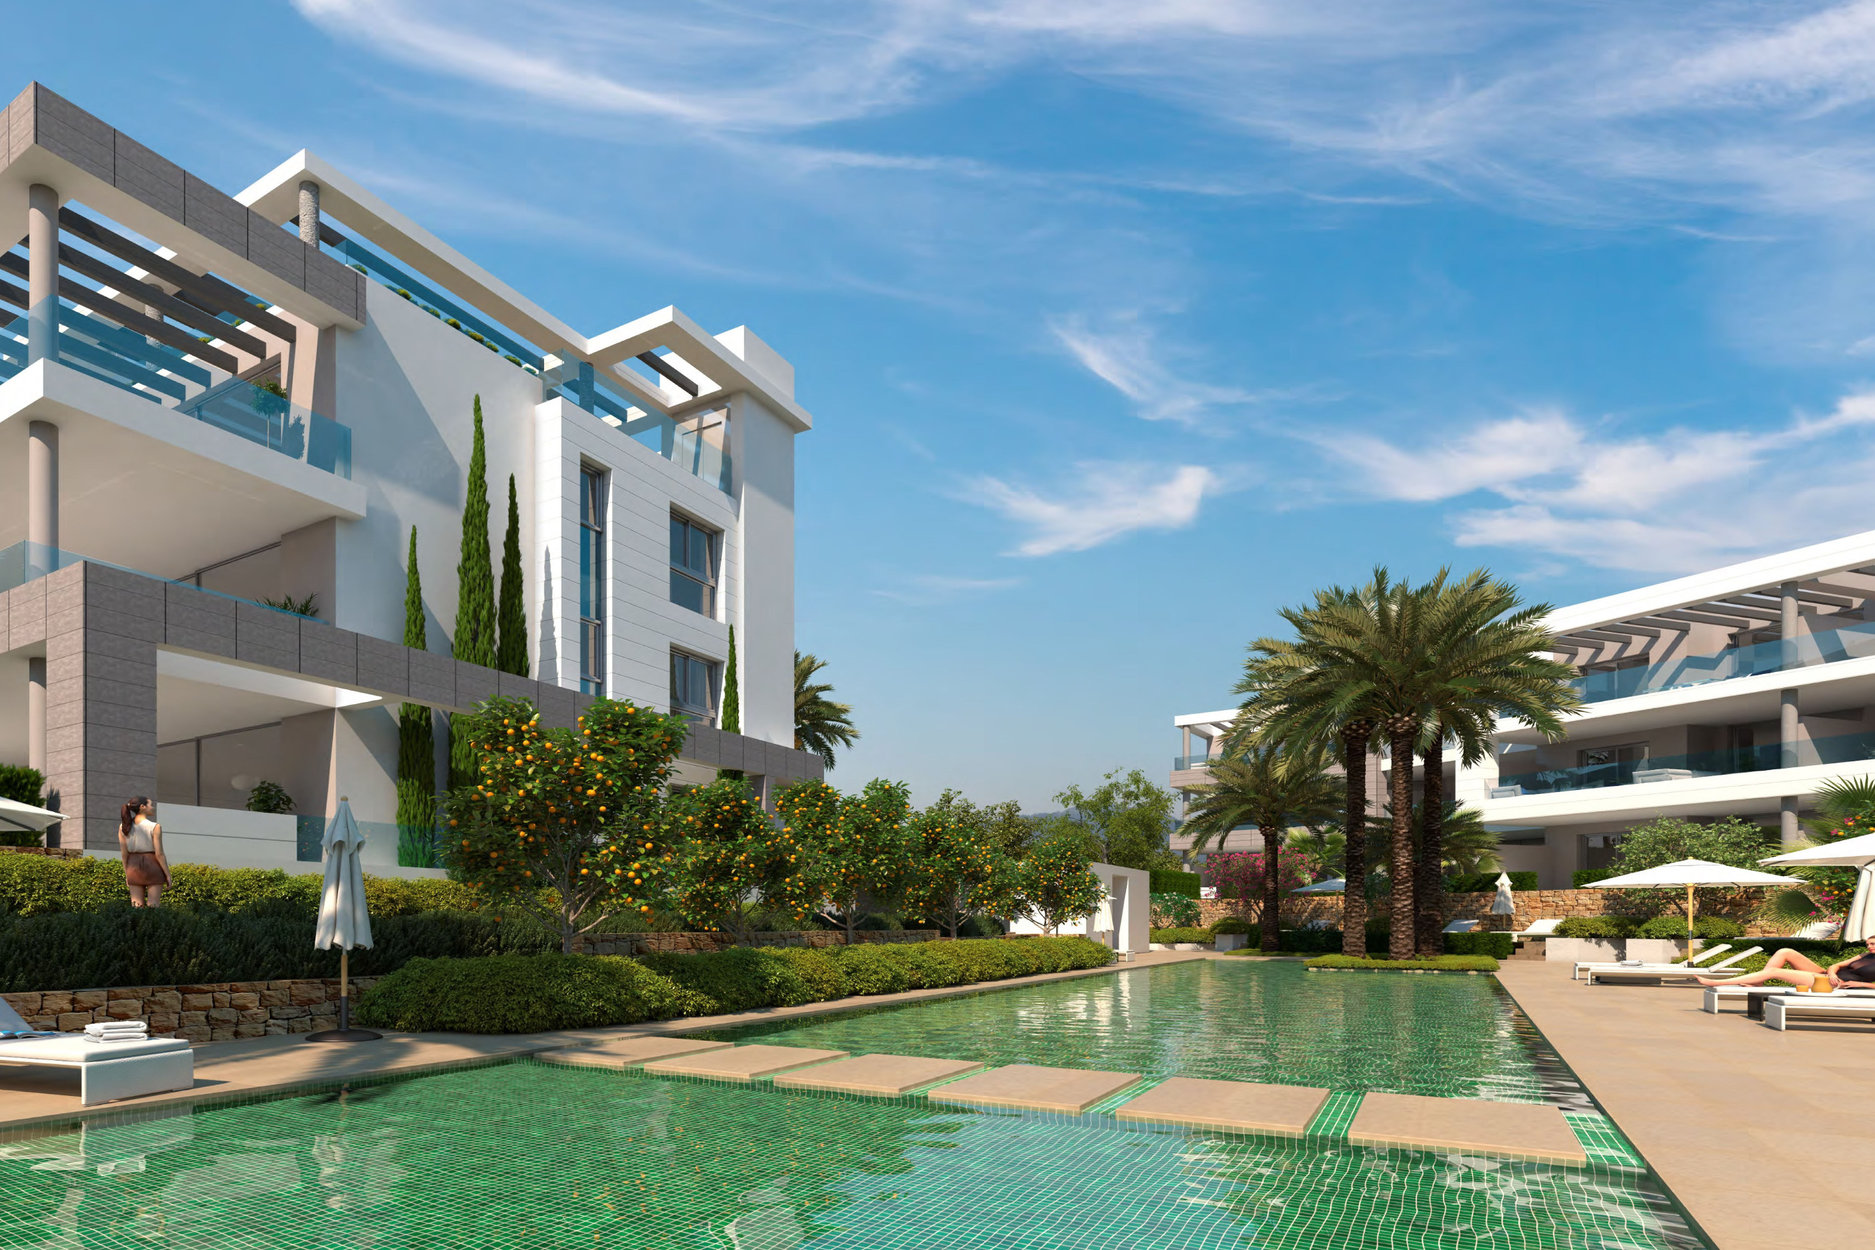 Apartment For Sale in The Residences, Cancelada, Estepona